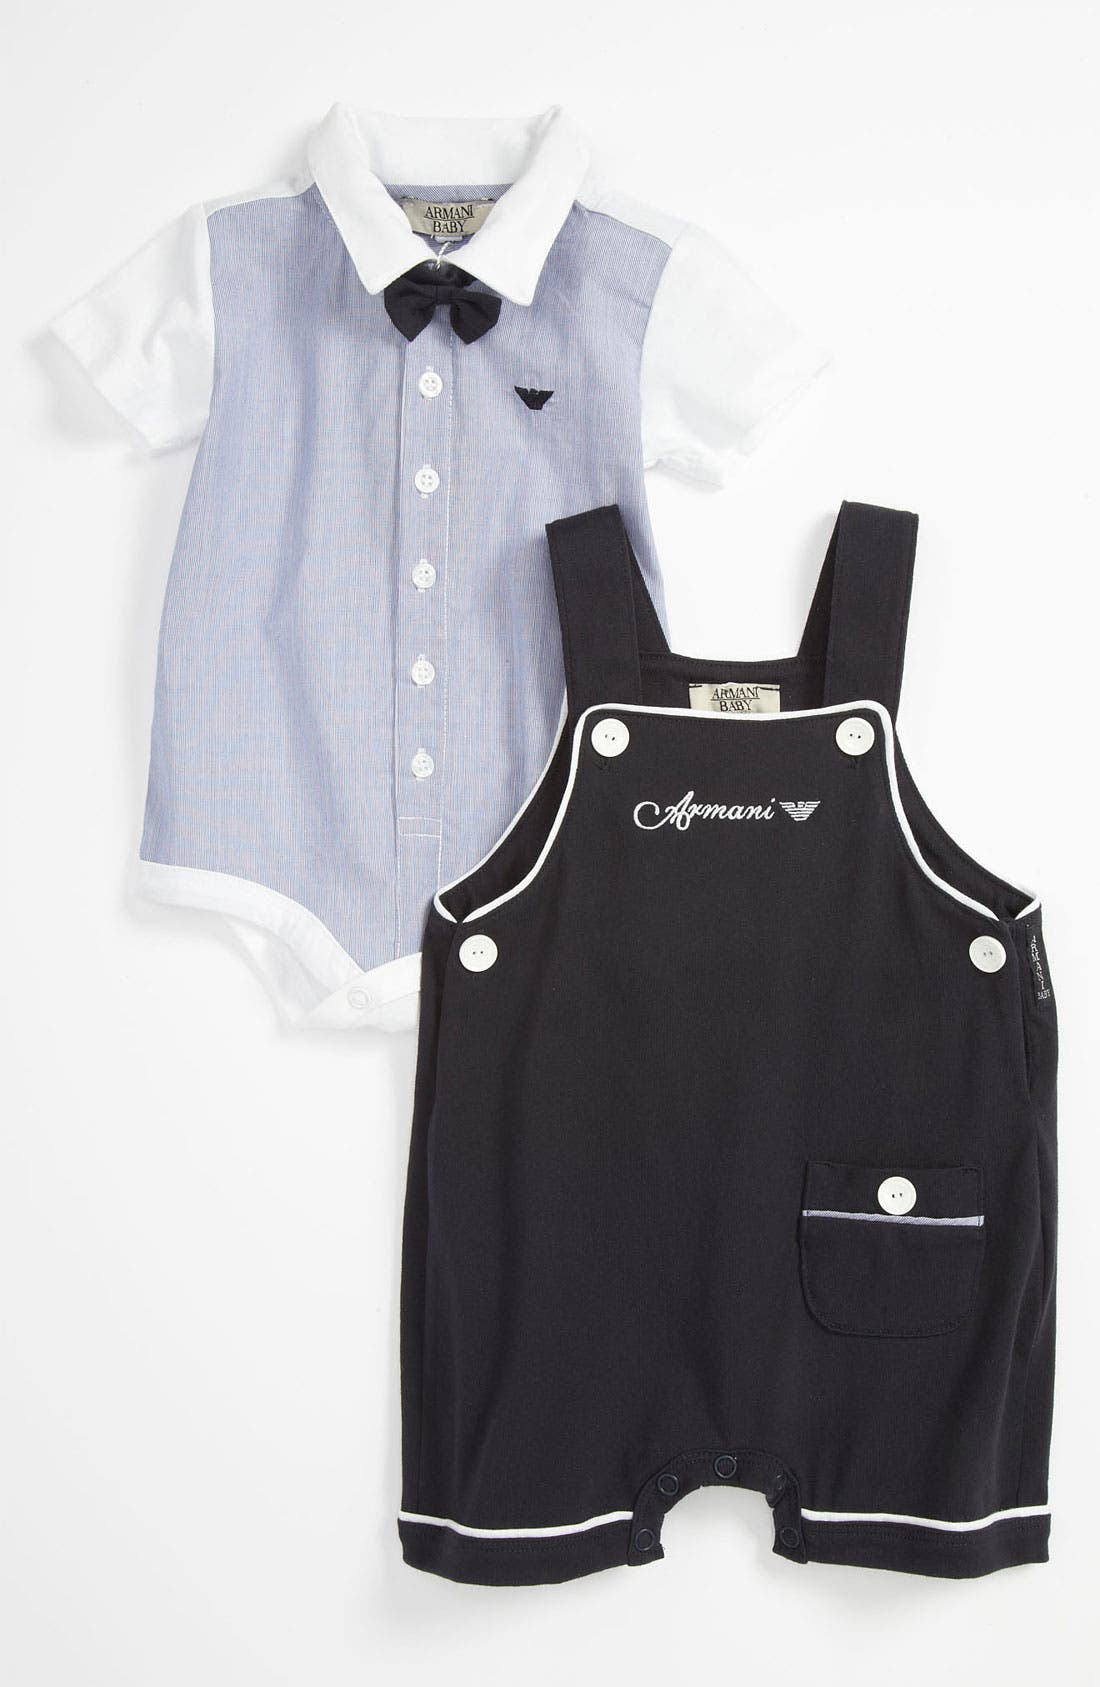 Main Image - Armani Junior Bodysuit, Overalls & Bow Tie (Infant)